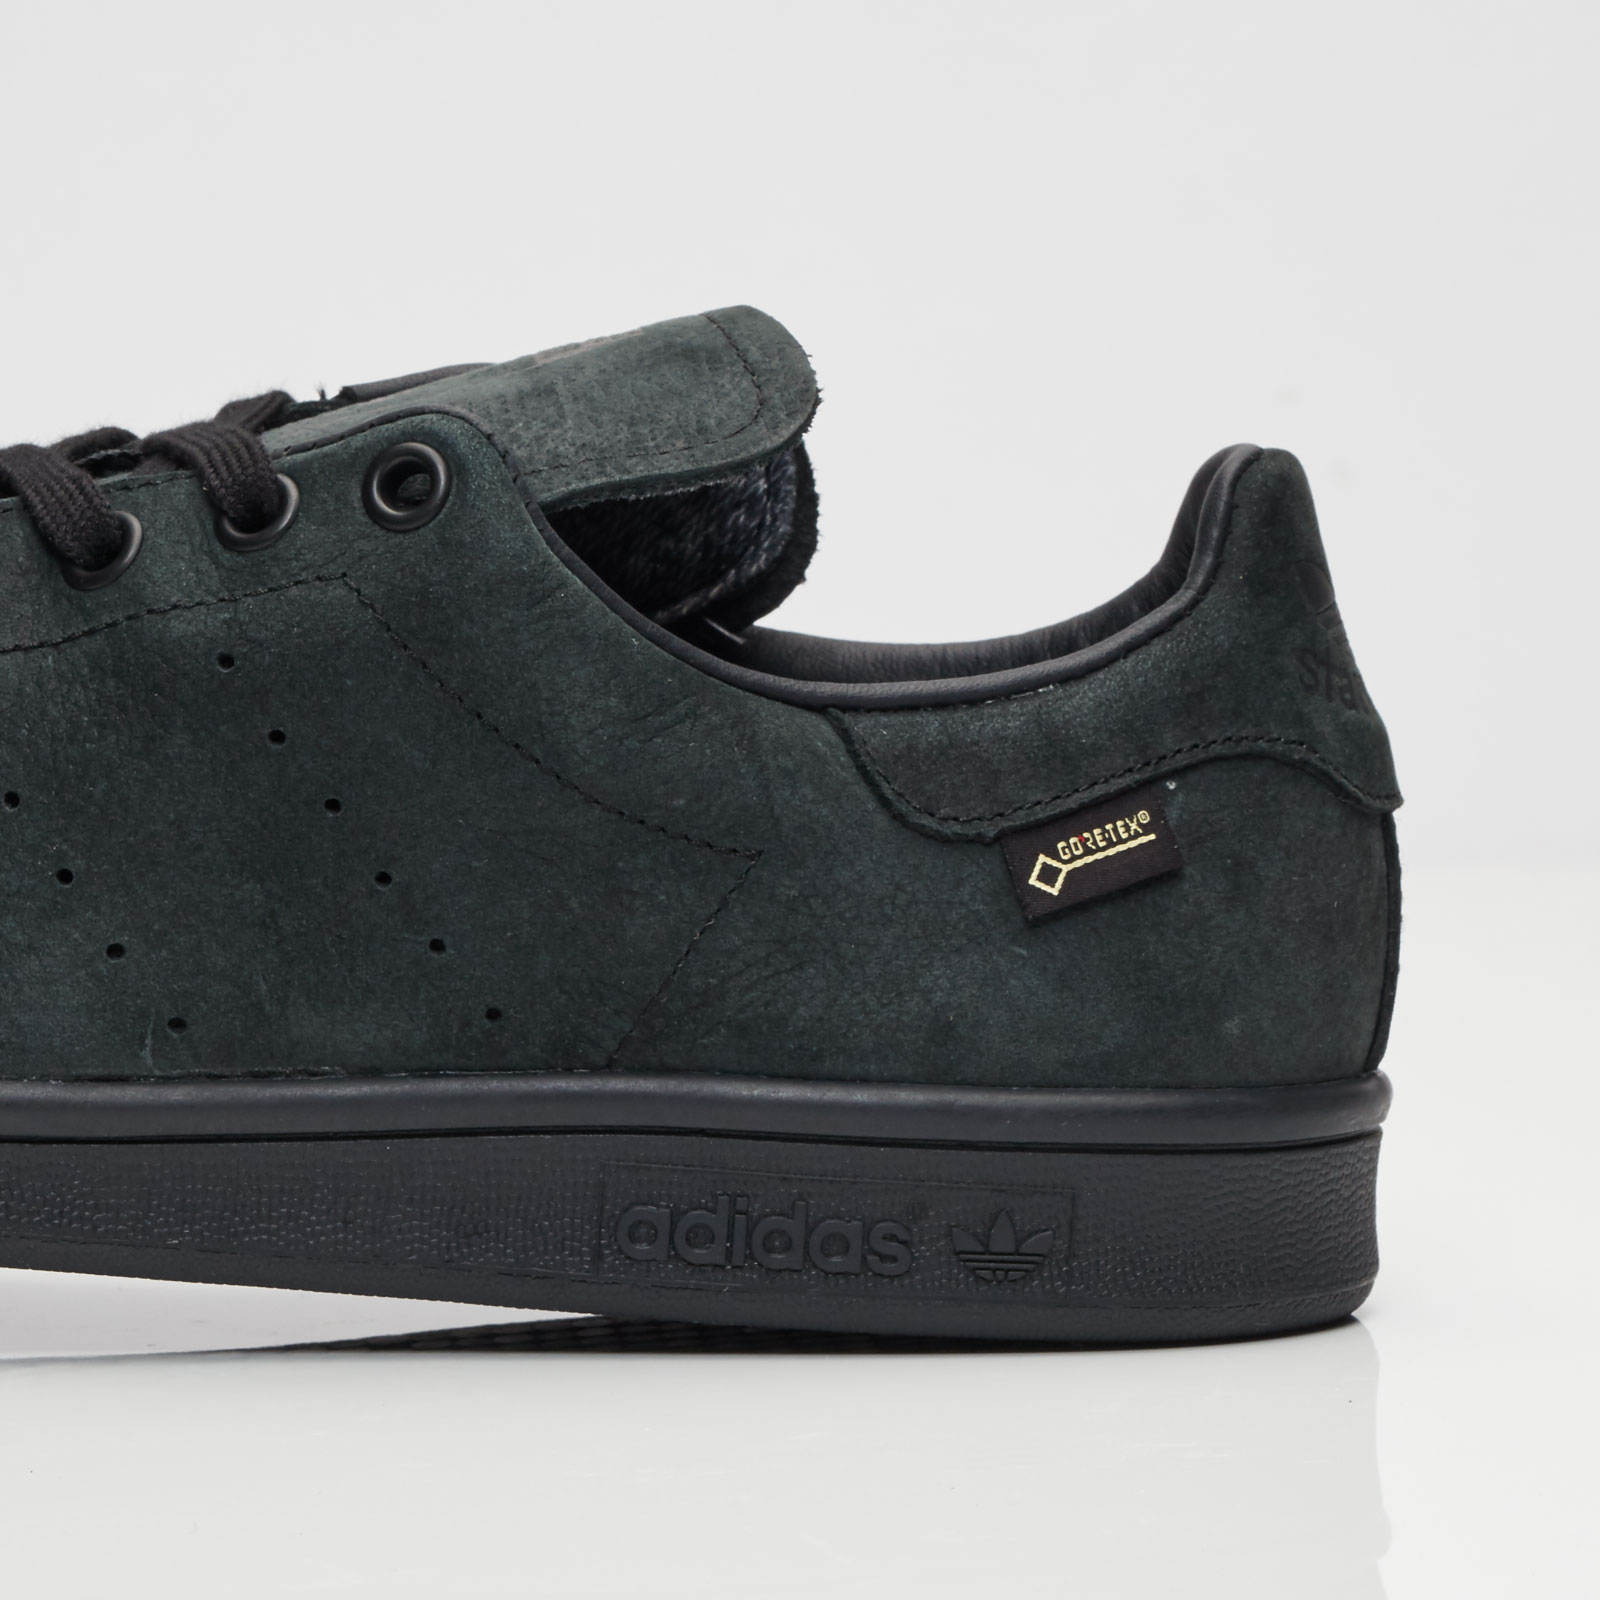 hot products wholesale sales buy online adidas Stan Smith GTX - S80048 - Sneakersnstuff | sneakers ...